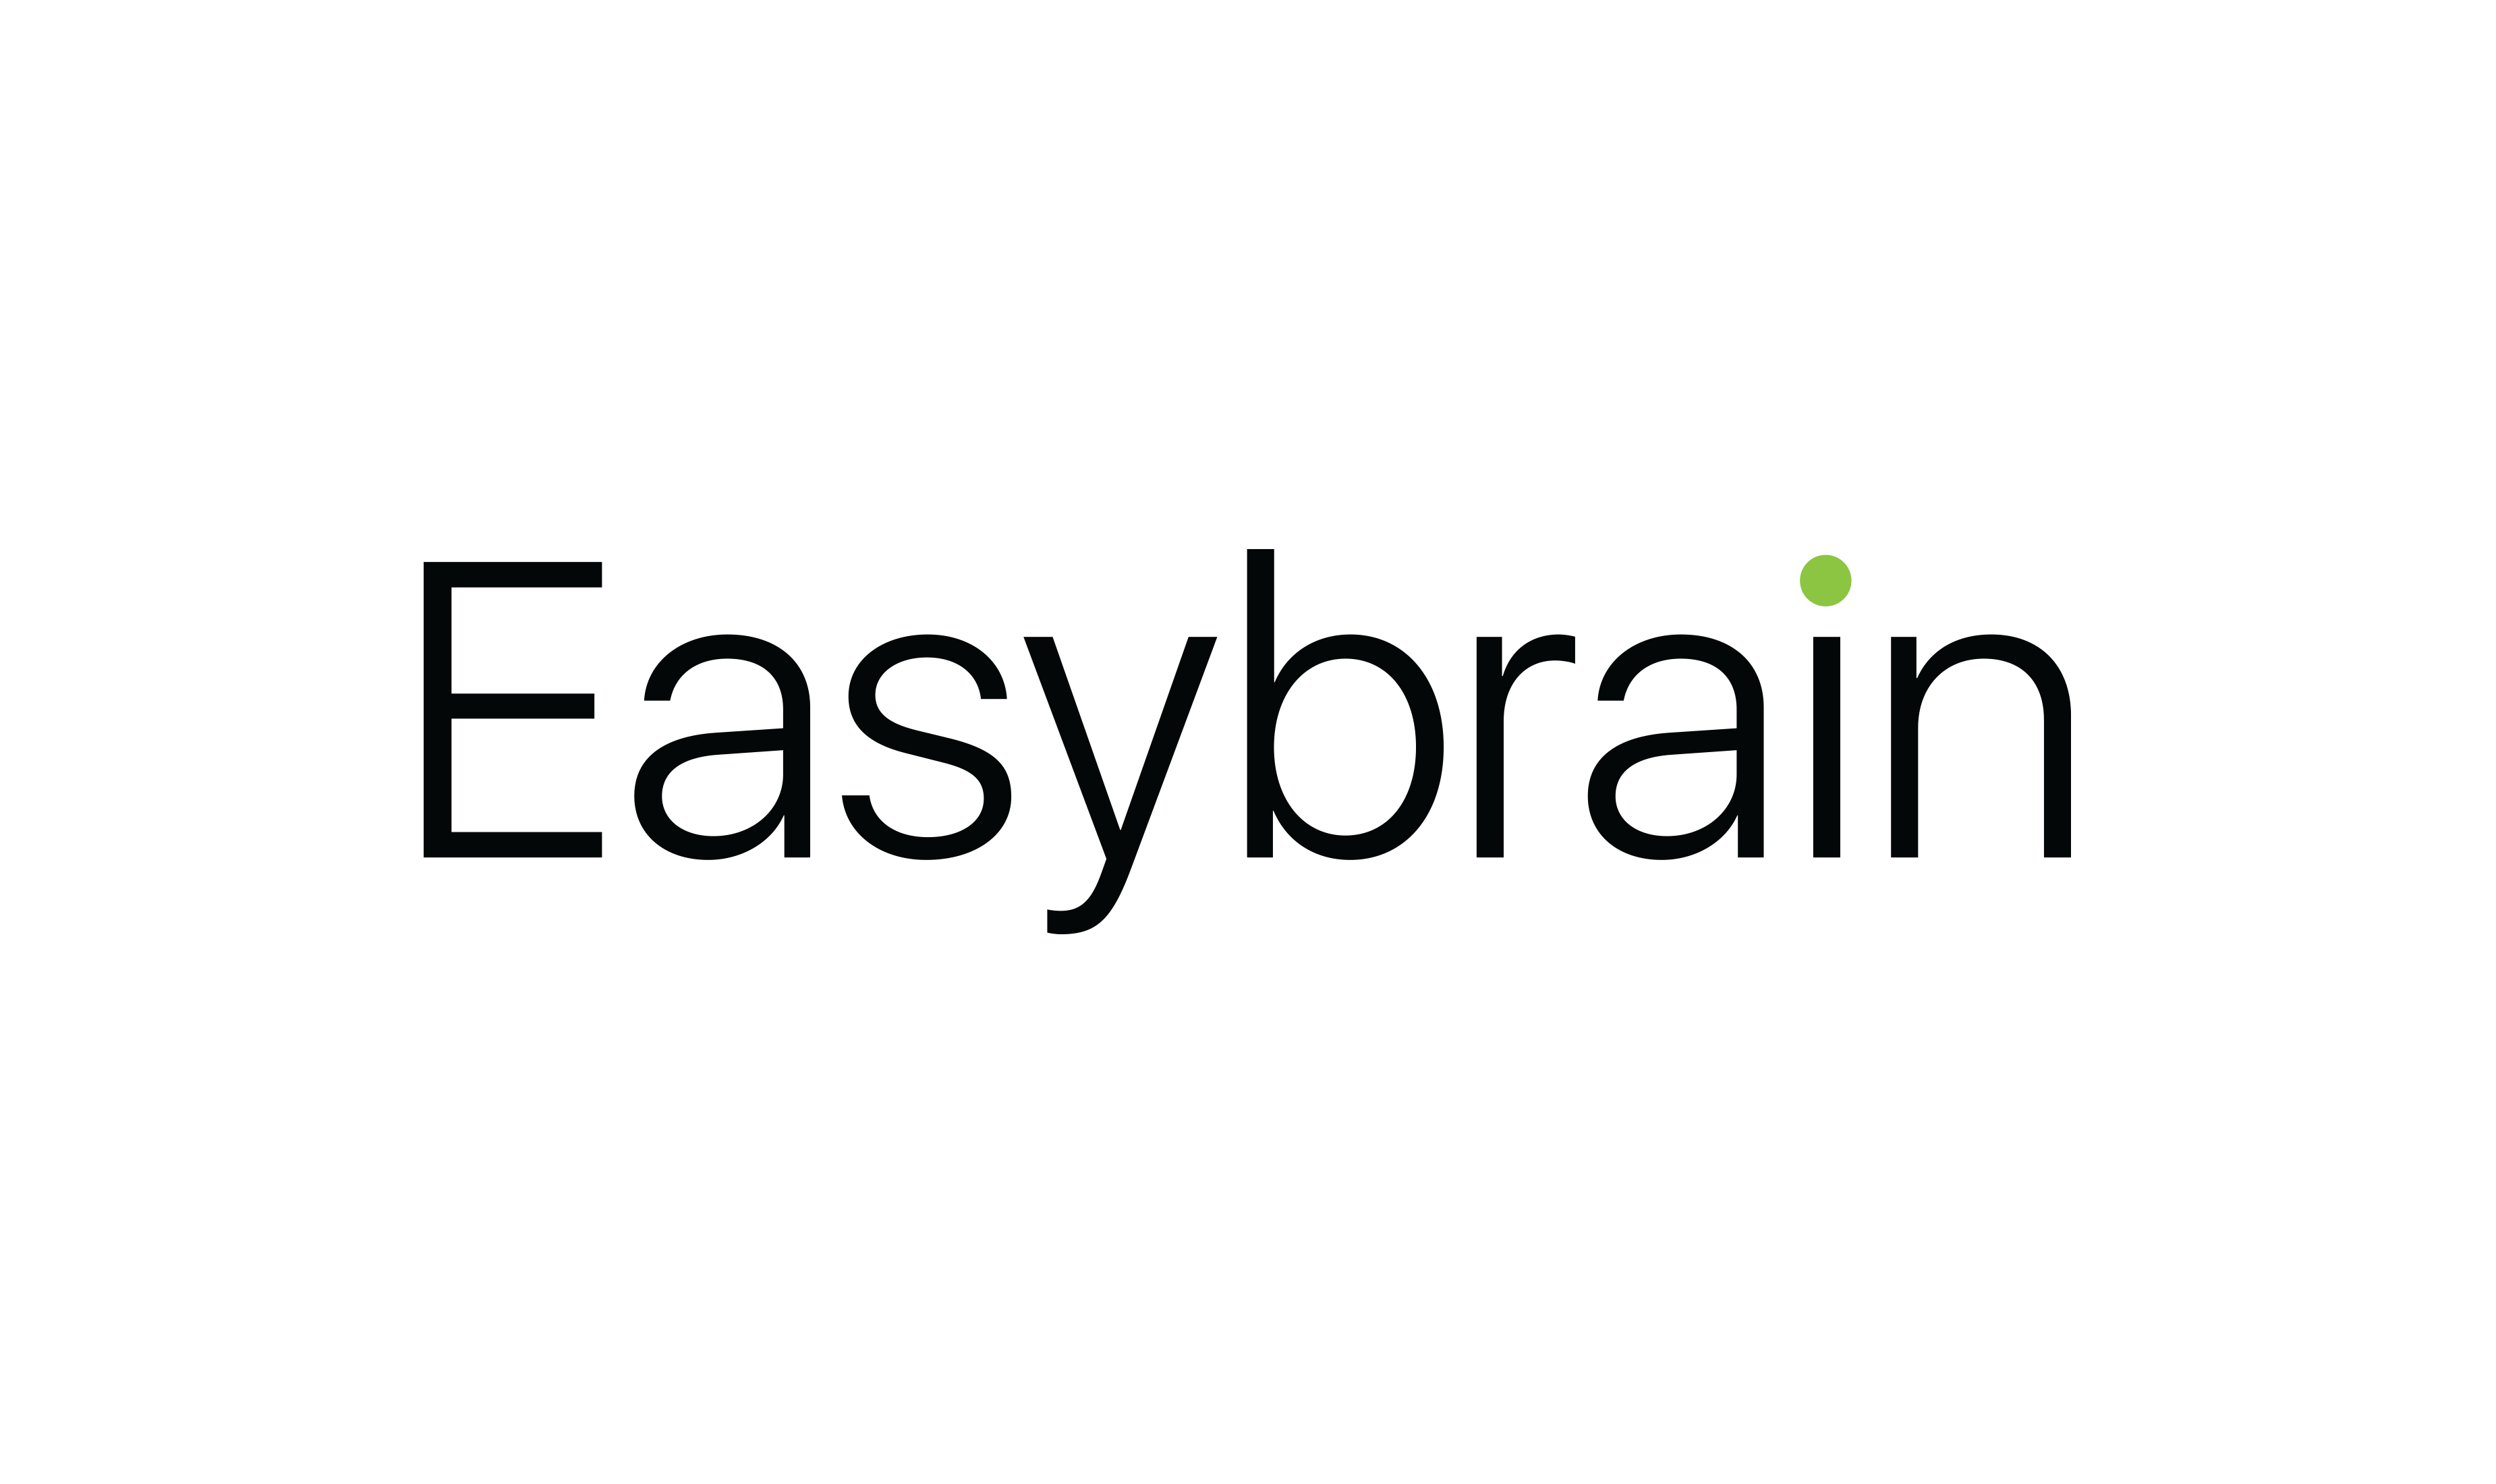 Easybrain - Simple Mobile Experiences